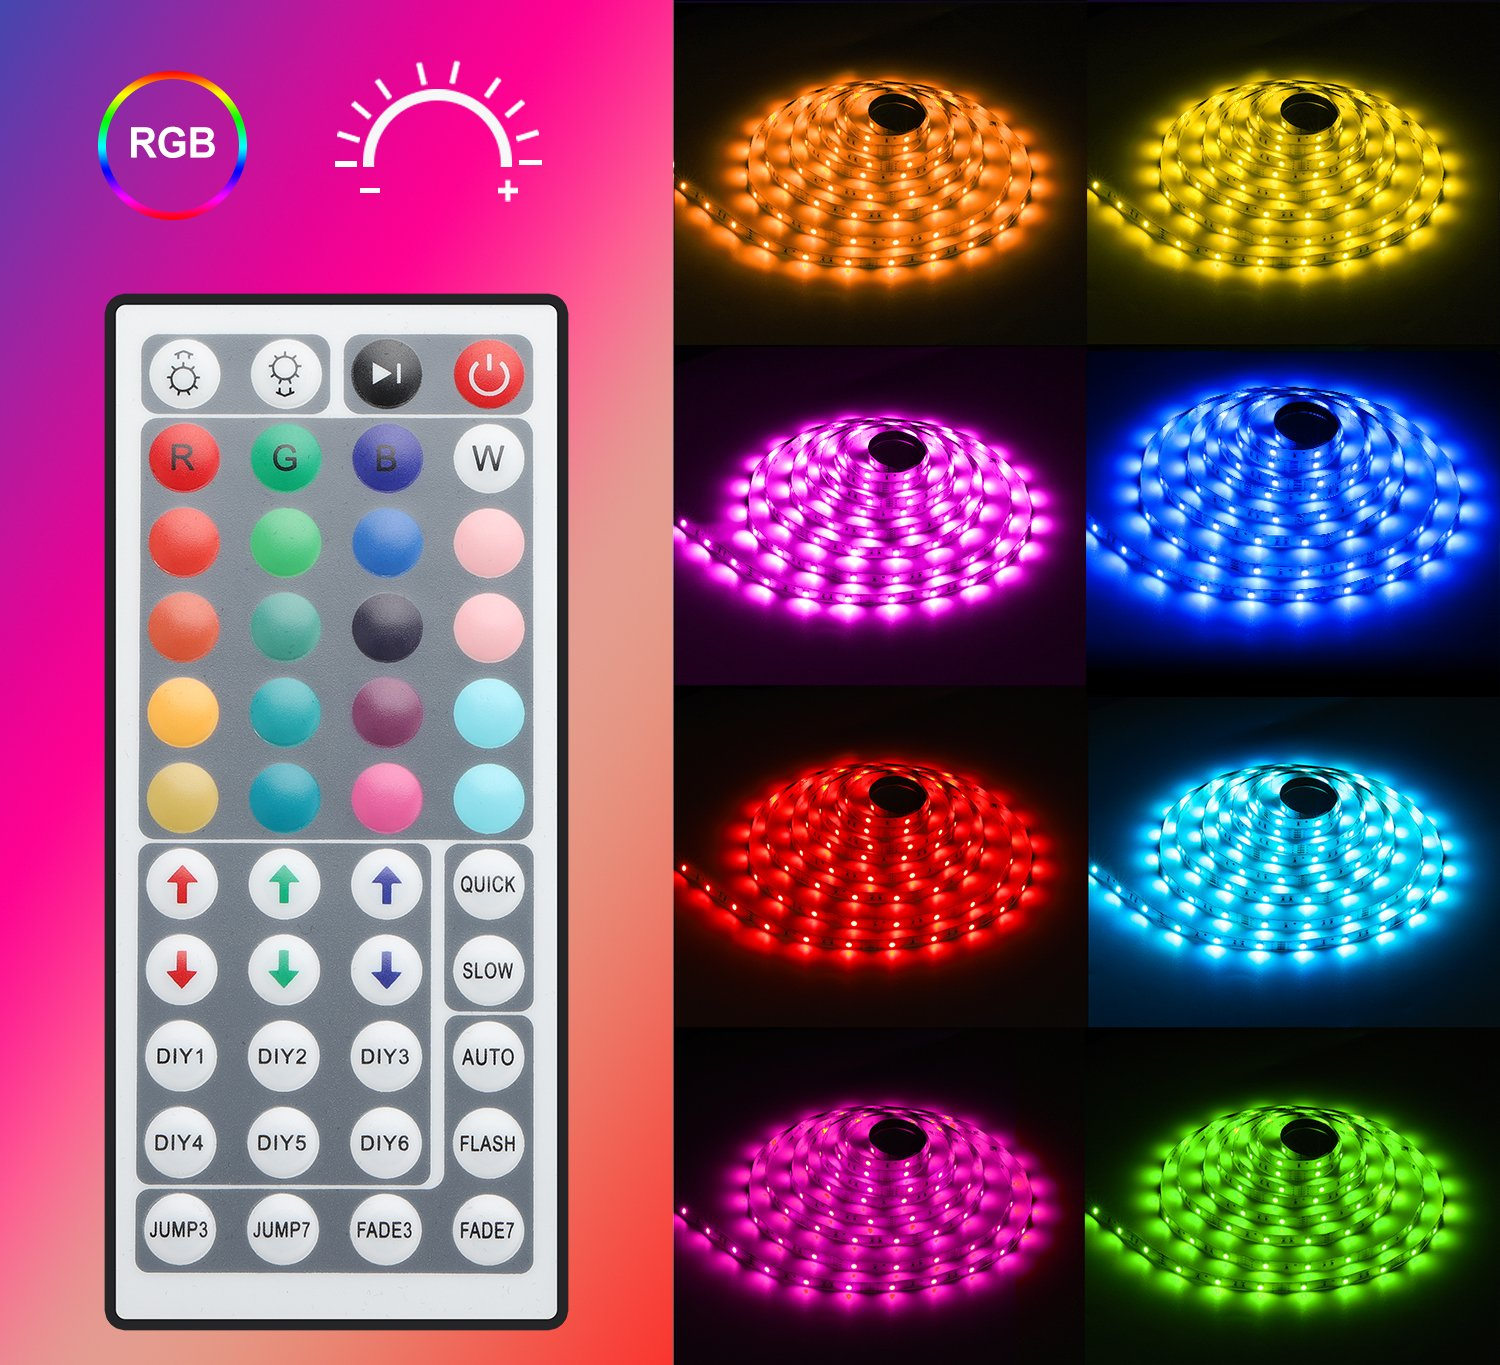 MINGER LED Strip Light Waterproof 16.4ft RGB SMD 5050 LED Rope Lighting Color Changing Full Kit with 44-keys IR Remote Controller & Power Supply Led Strip Lights for Home Kitchen Bed Room Decoration by MINGER (Image #2)